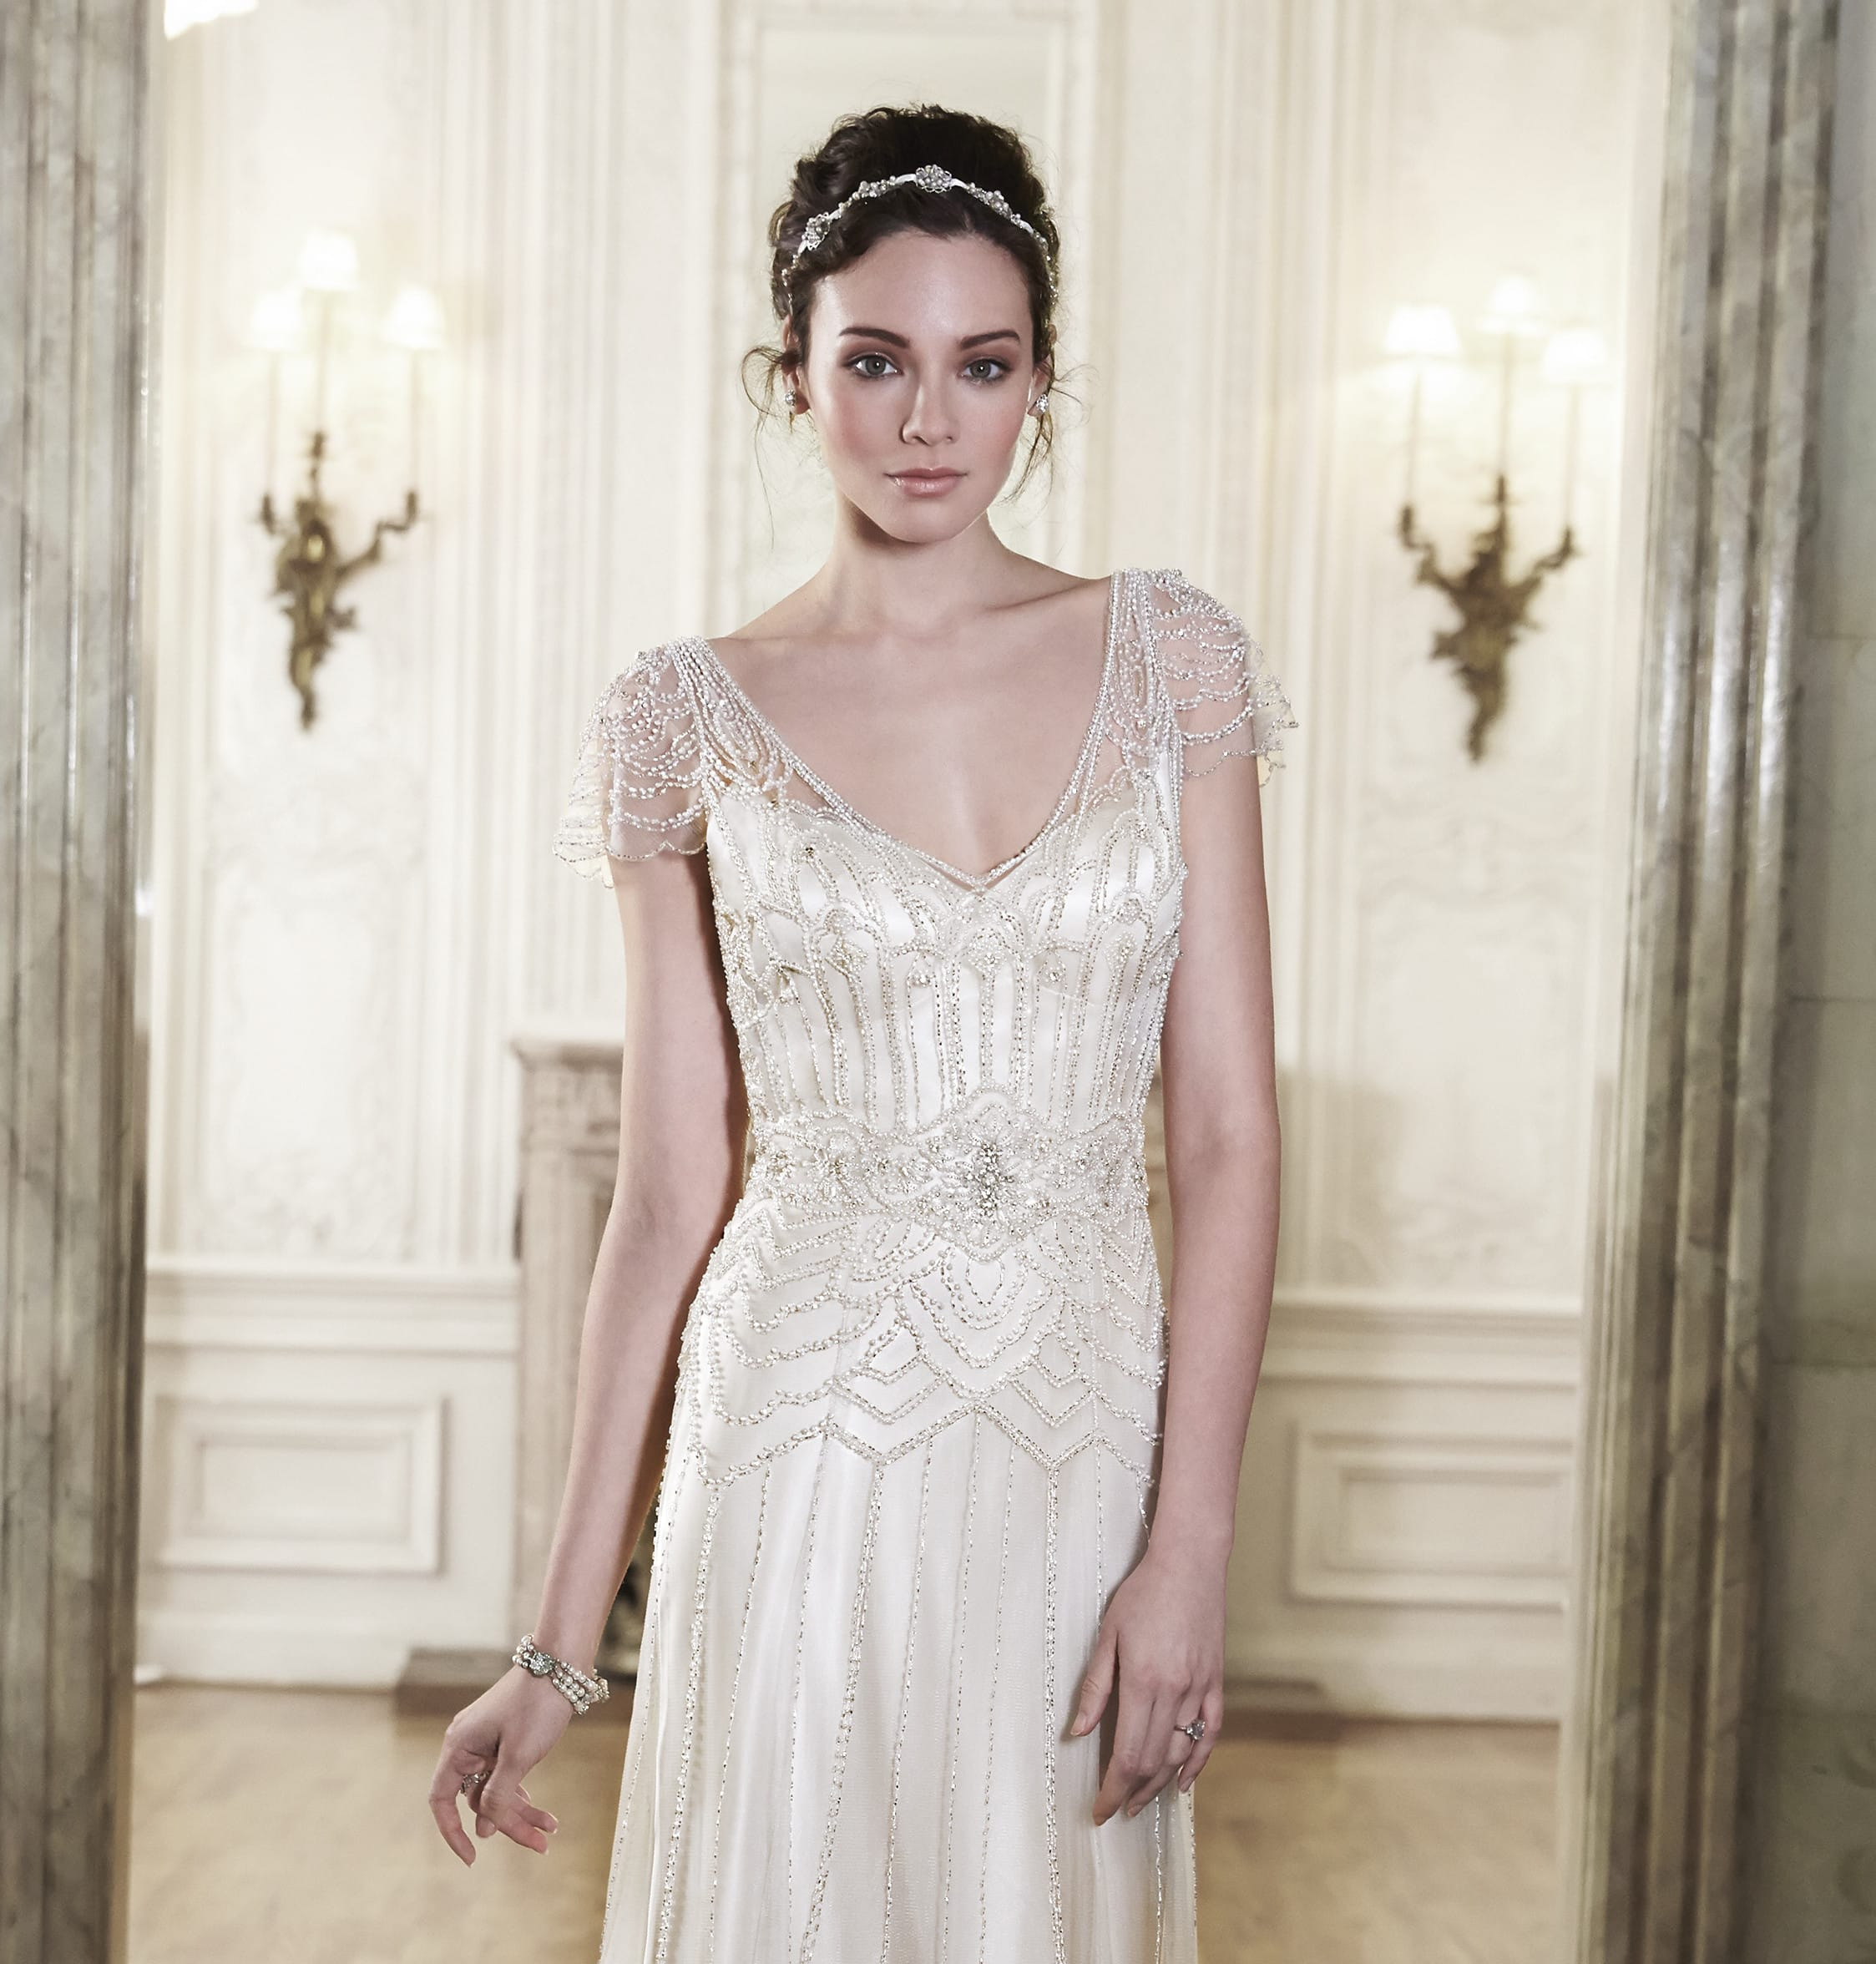 Great Gatsby Inspired Wedding Dresses To Fall In Love With